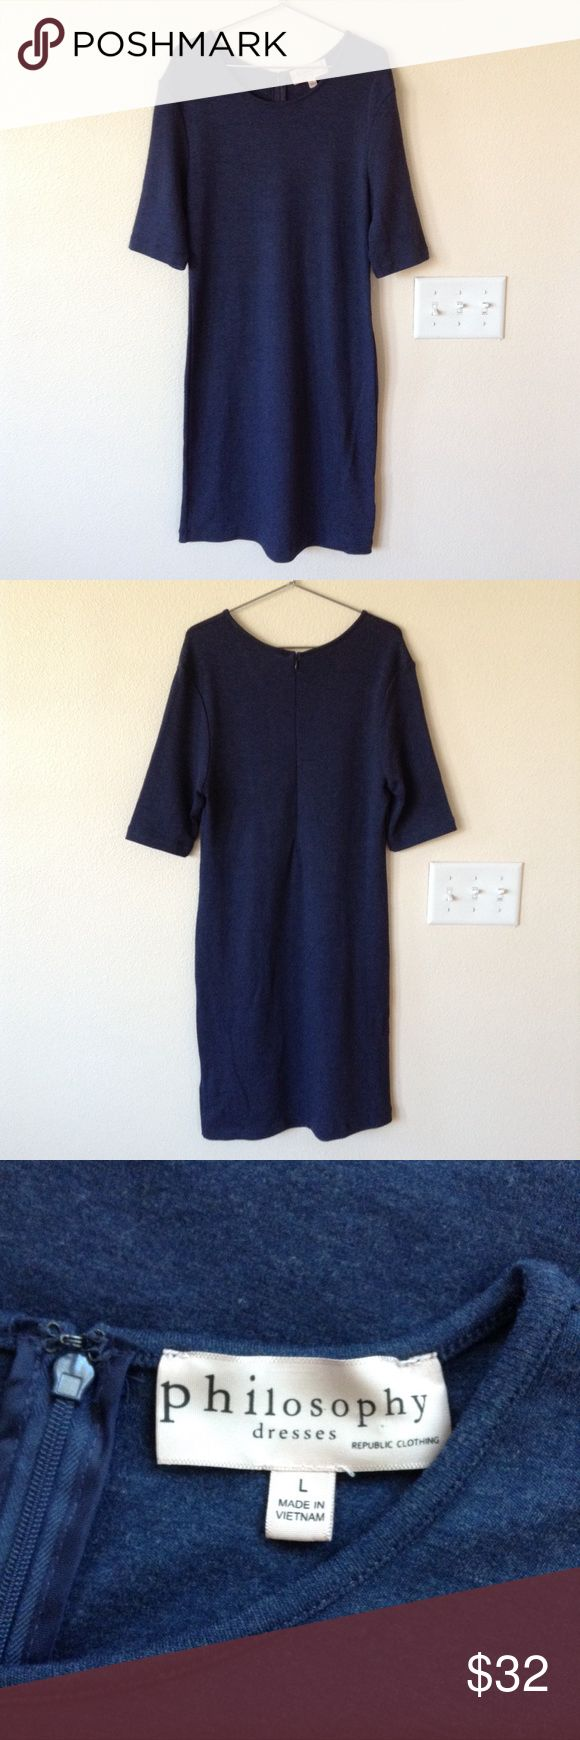 Philosophy Blue Dress This Philosophy dress is like new in a gorgeous blue color. The fabric has a nice stretch and weight to it, and it is very soft! Zips up in the back. Philosophy Dresses